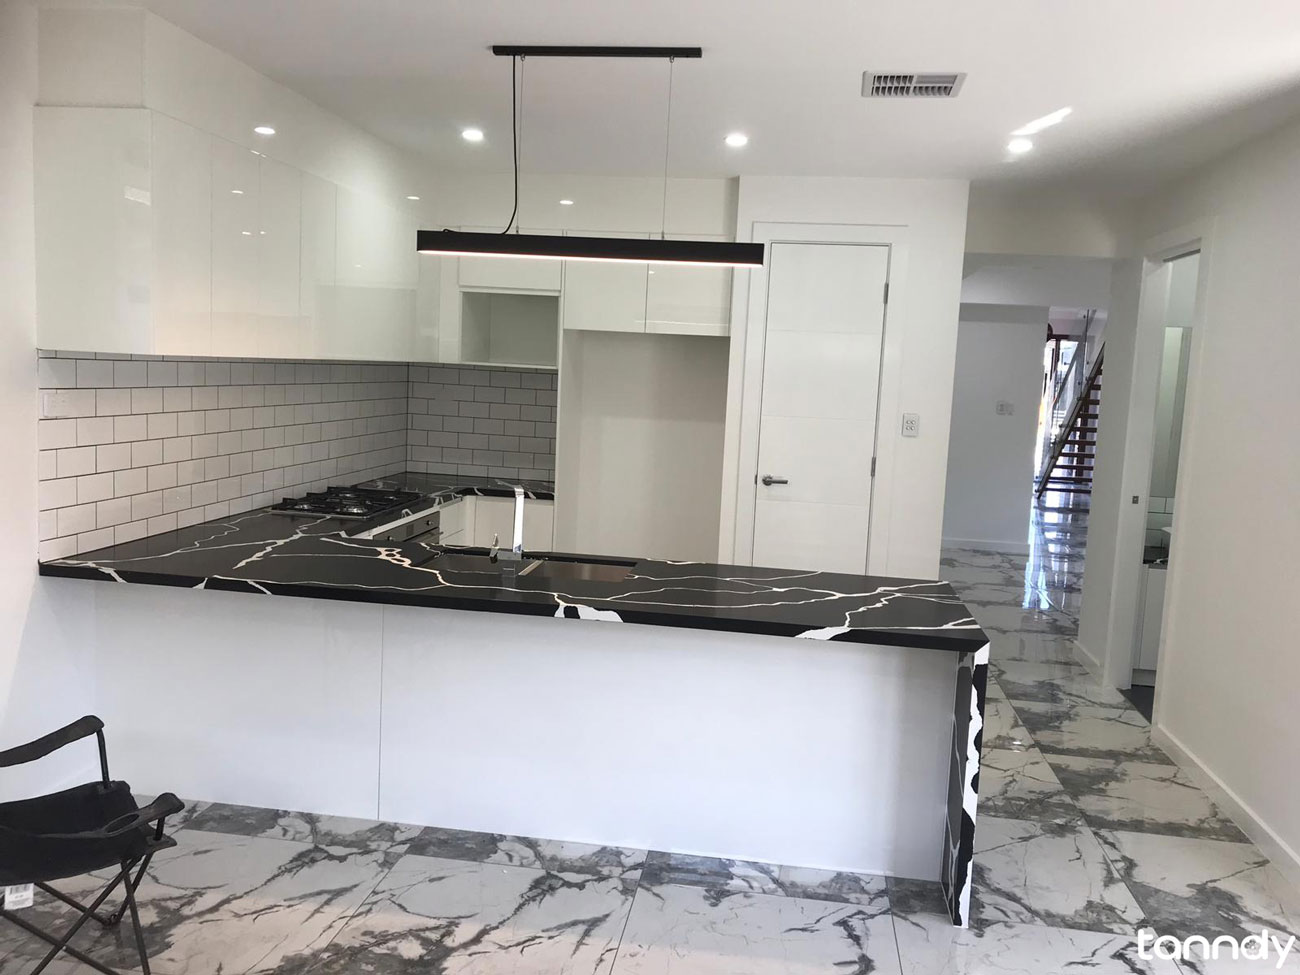 L shape kitchen cabinet with black marble countertop